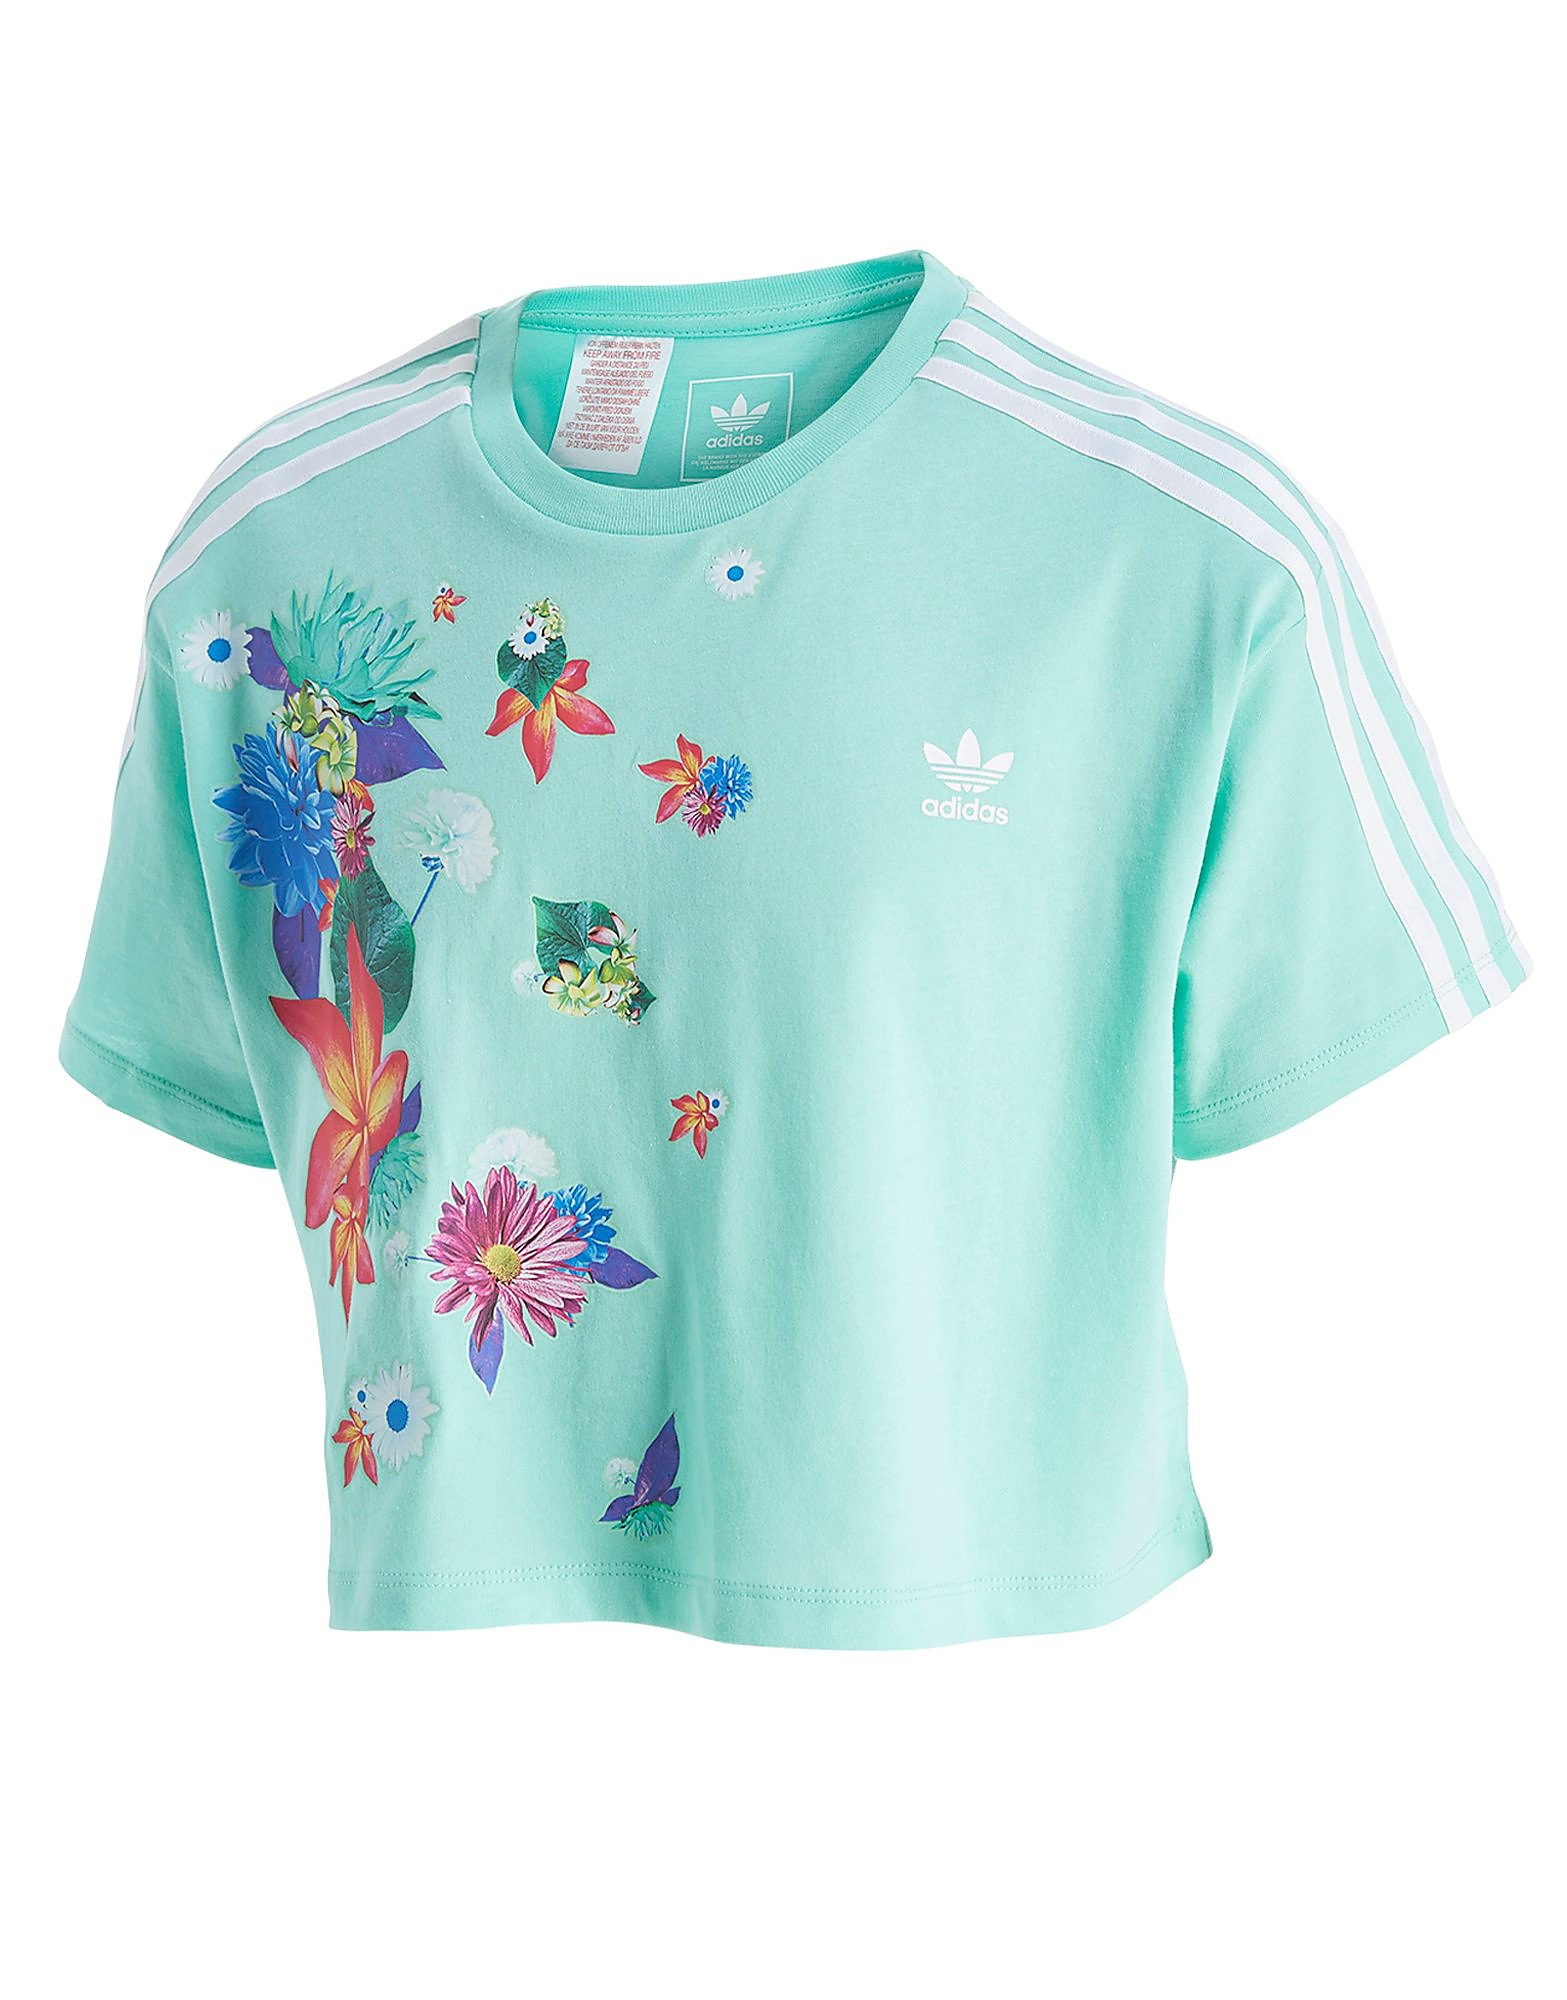 adidas Originals T-shirt Girls' Floral Crop Junior